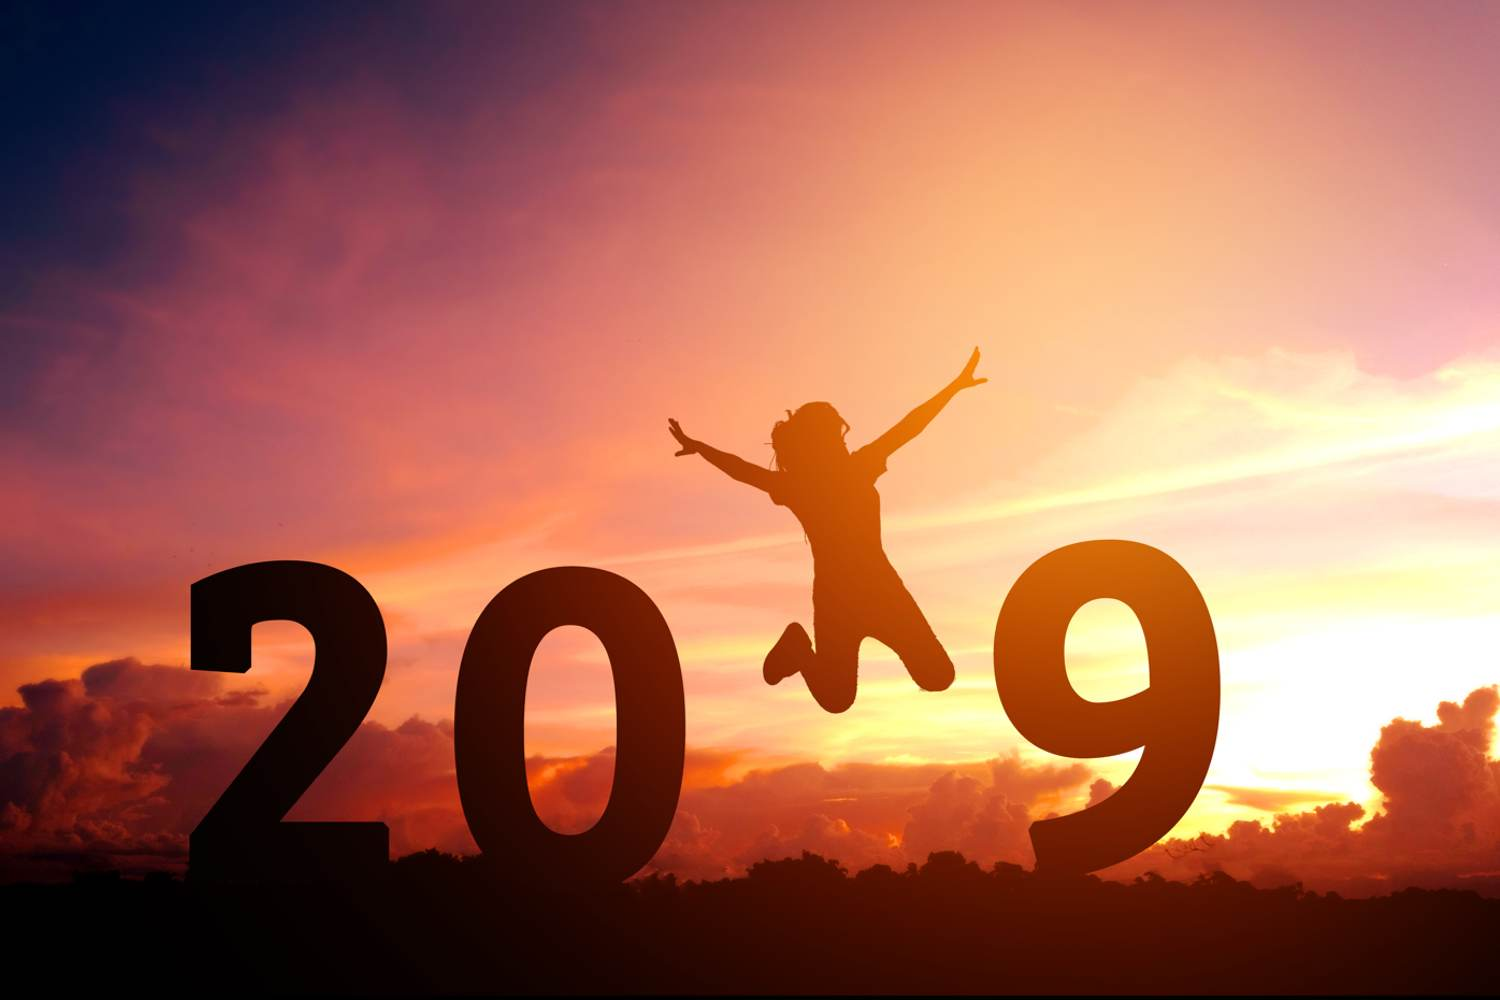 2019 in field with a silhouette of person jumping with joy replacing the 1 at sunset